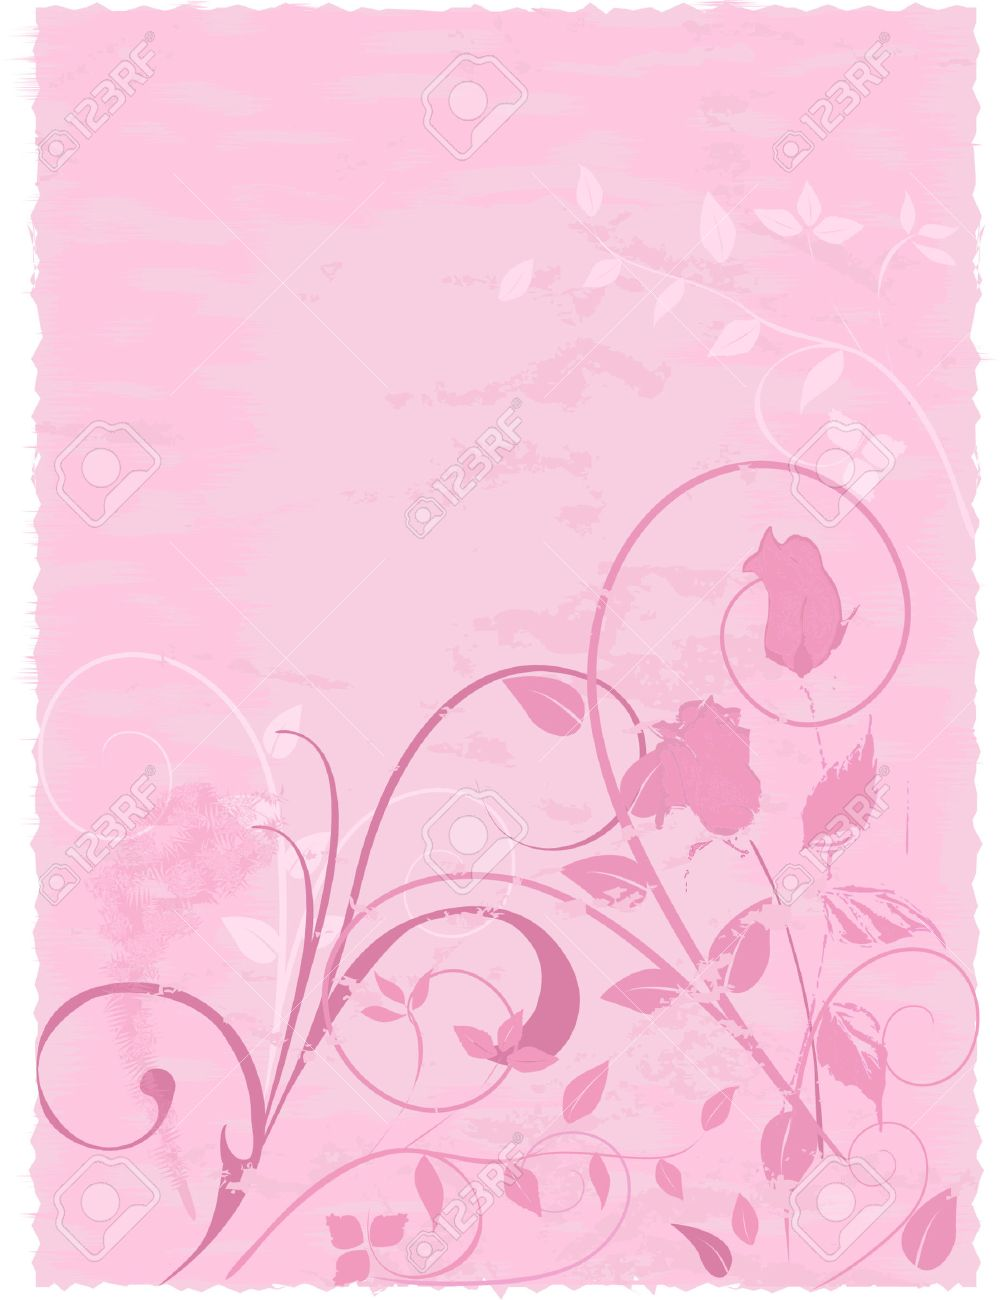 Abstract Floral Design With Roses On Textured Parchment Background. Note    Edges Are Deckled For